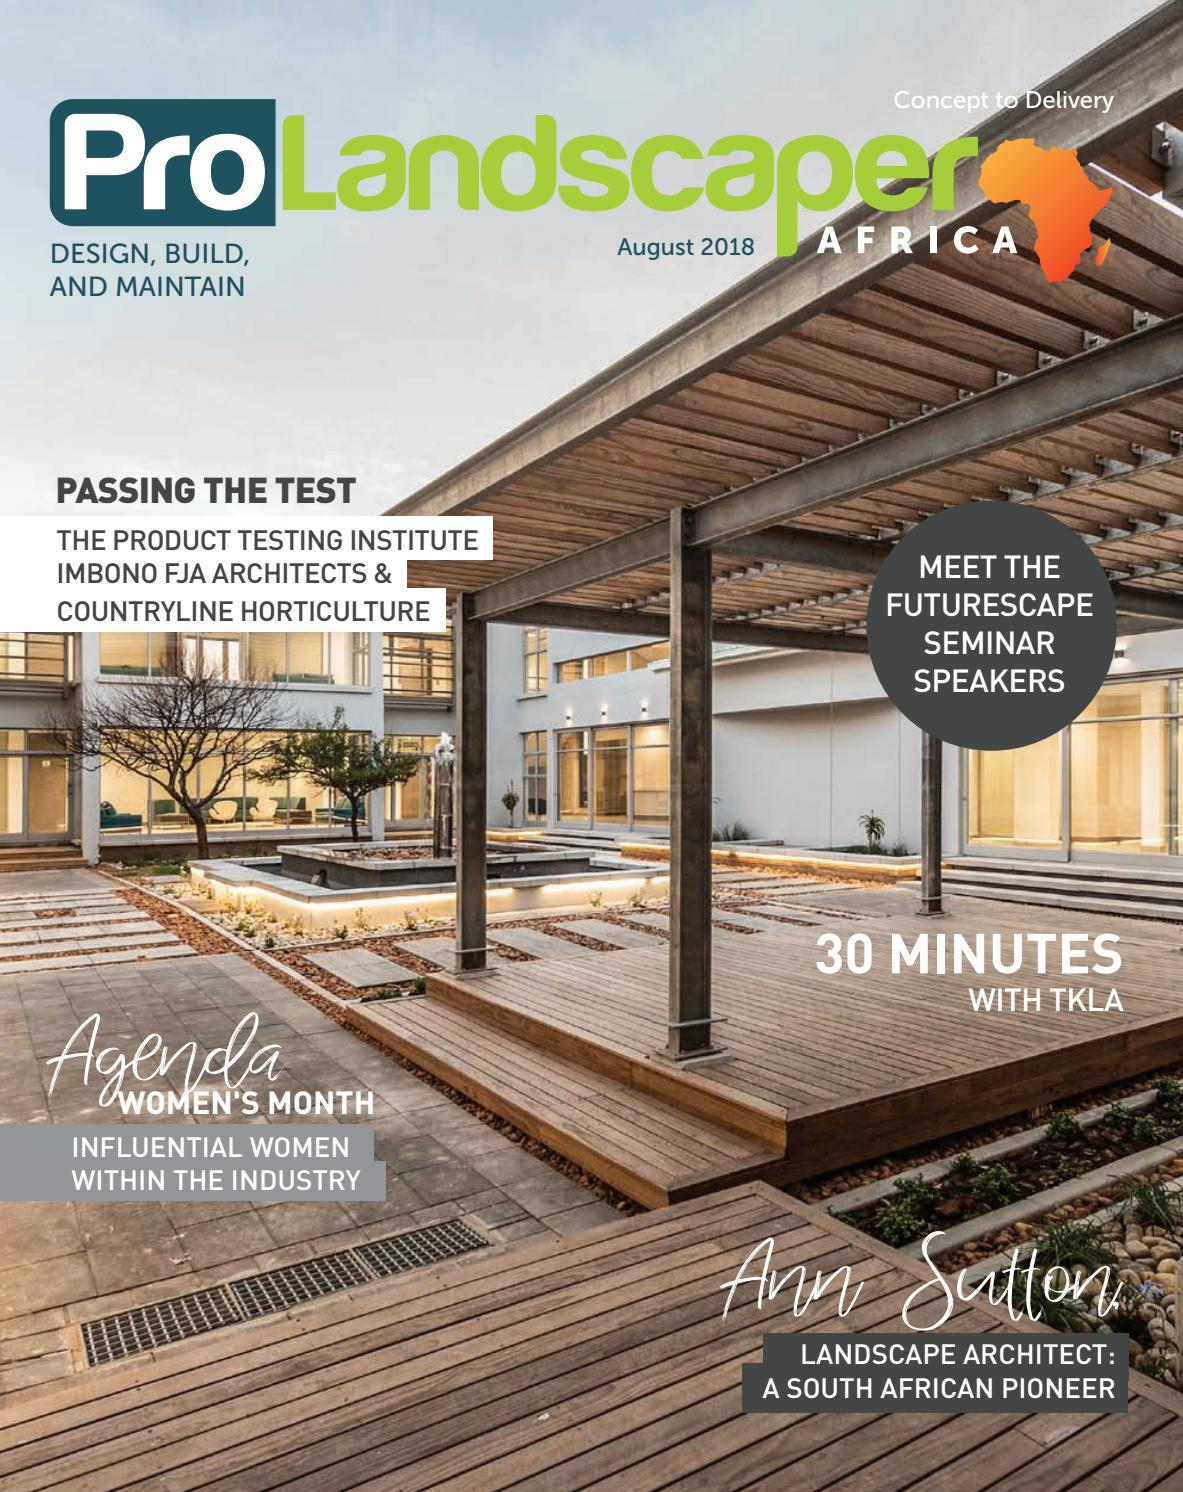 Pro landscaper africa august 2018 by eljays44 issuu